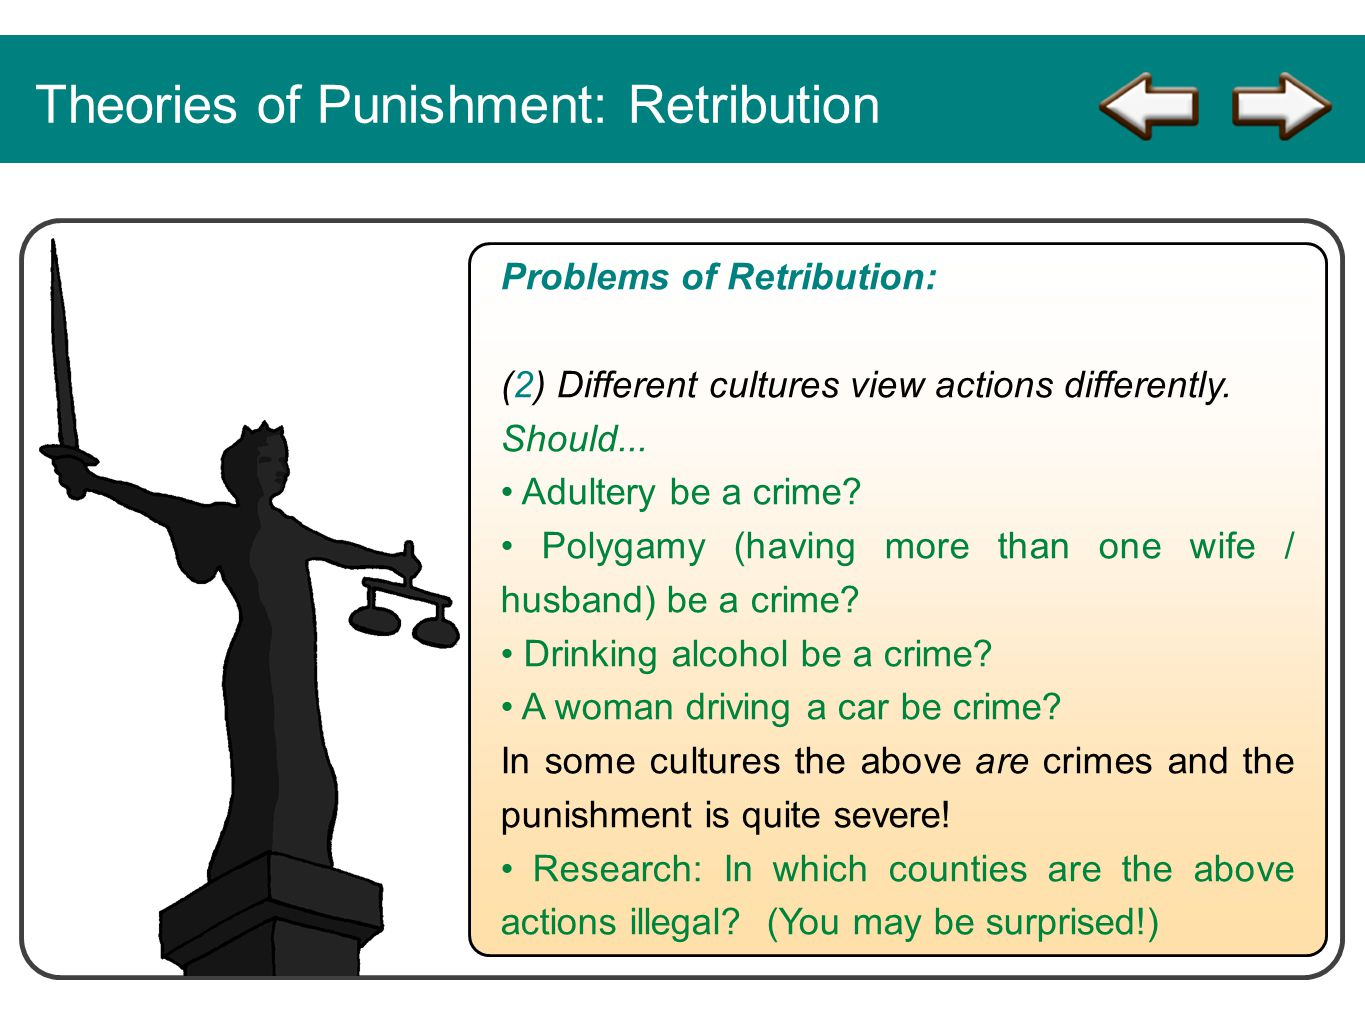 Theories of Punishment: Retribution Problems of Retribution: (2) Different cultures view actions differently. Should... Adultery be a crime? Polygamy